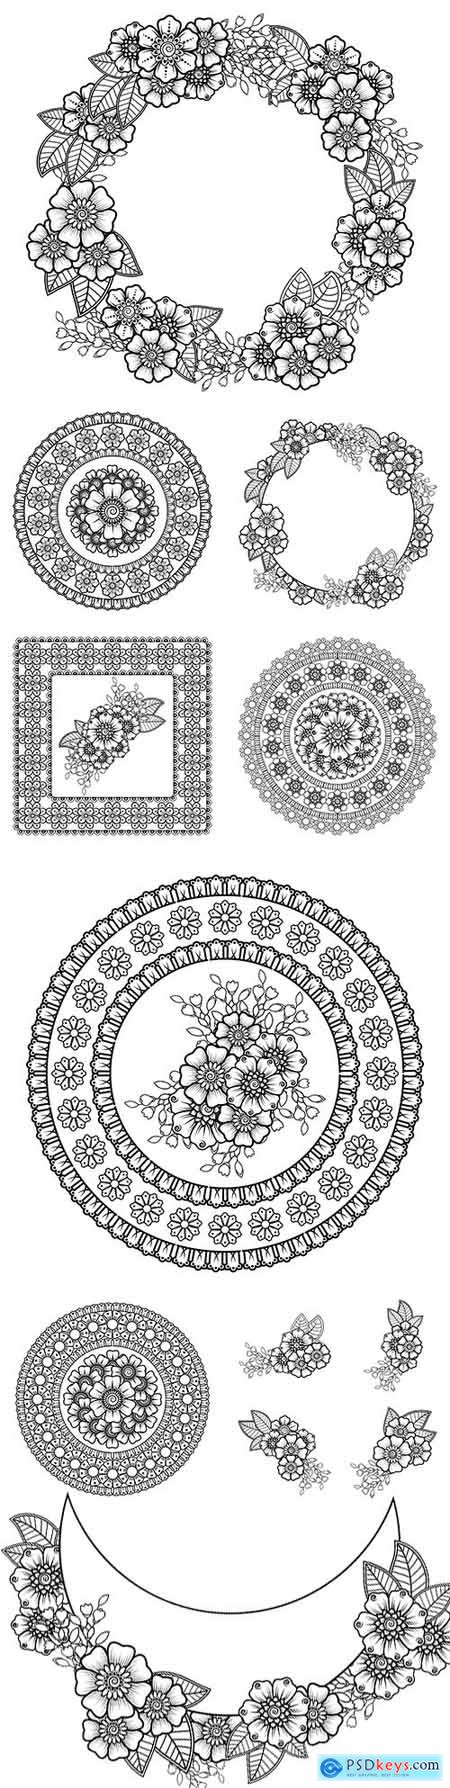 Mendy flower decoration in ethnic and oriental style ornament